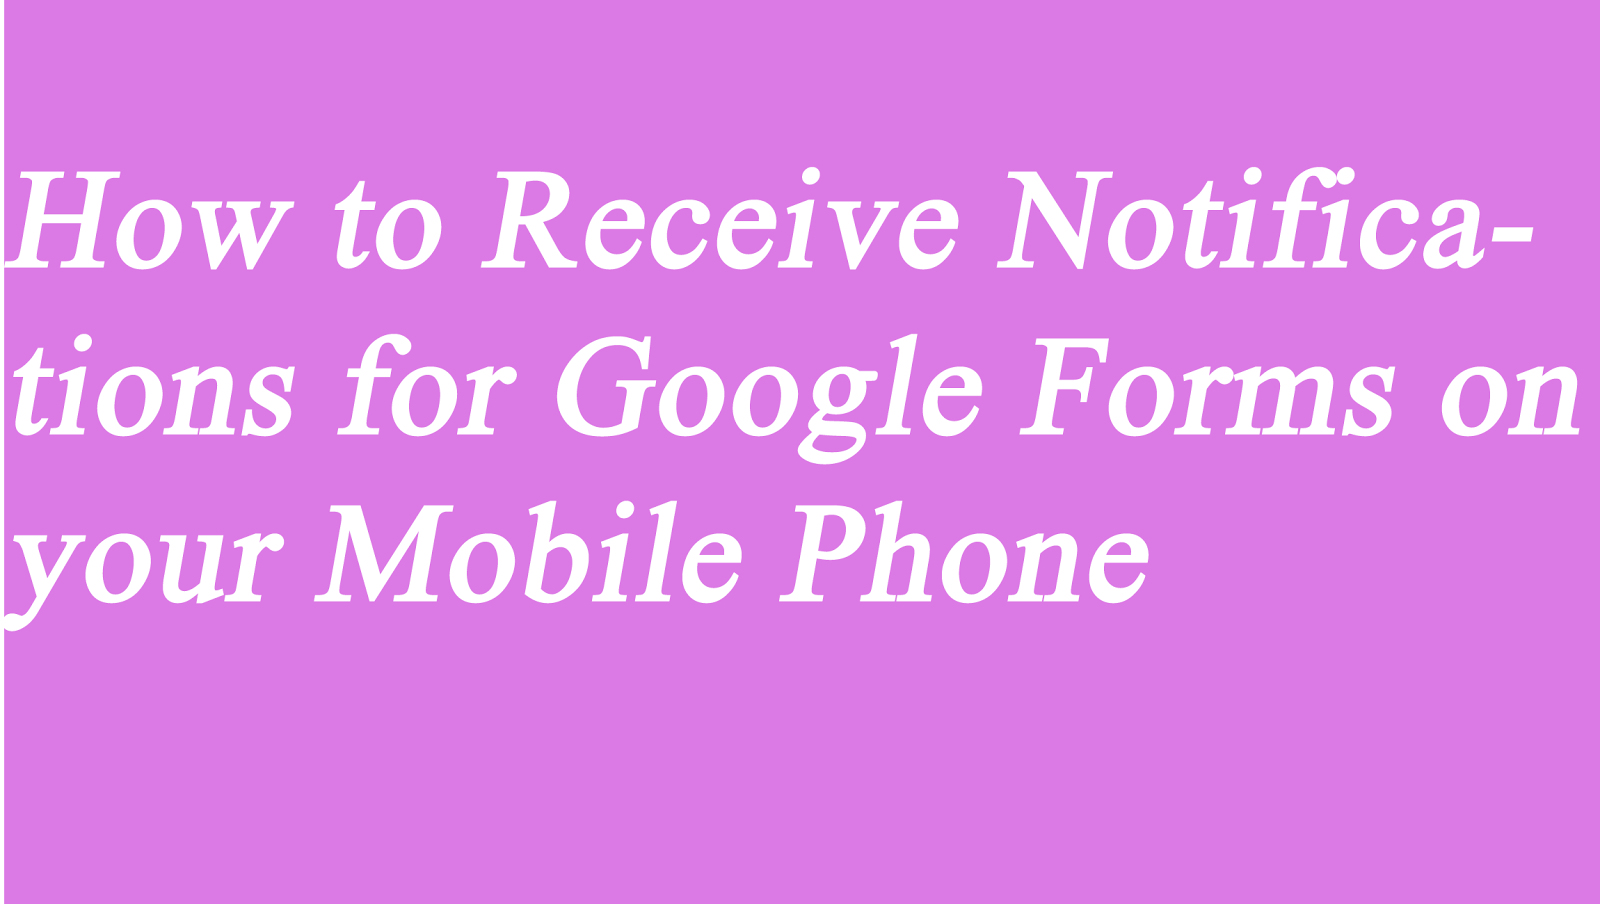 how to receive notifications for google forms on your mobile phone